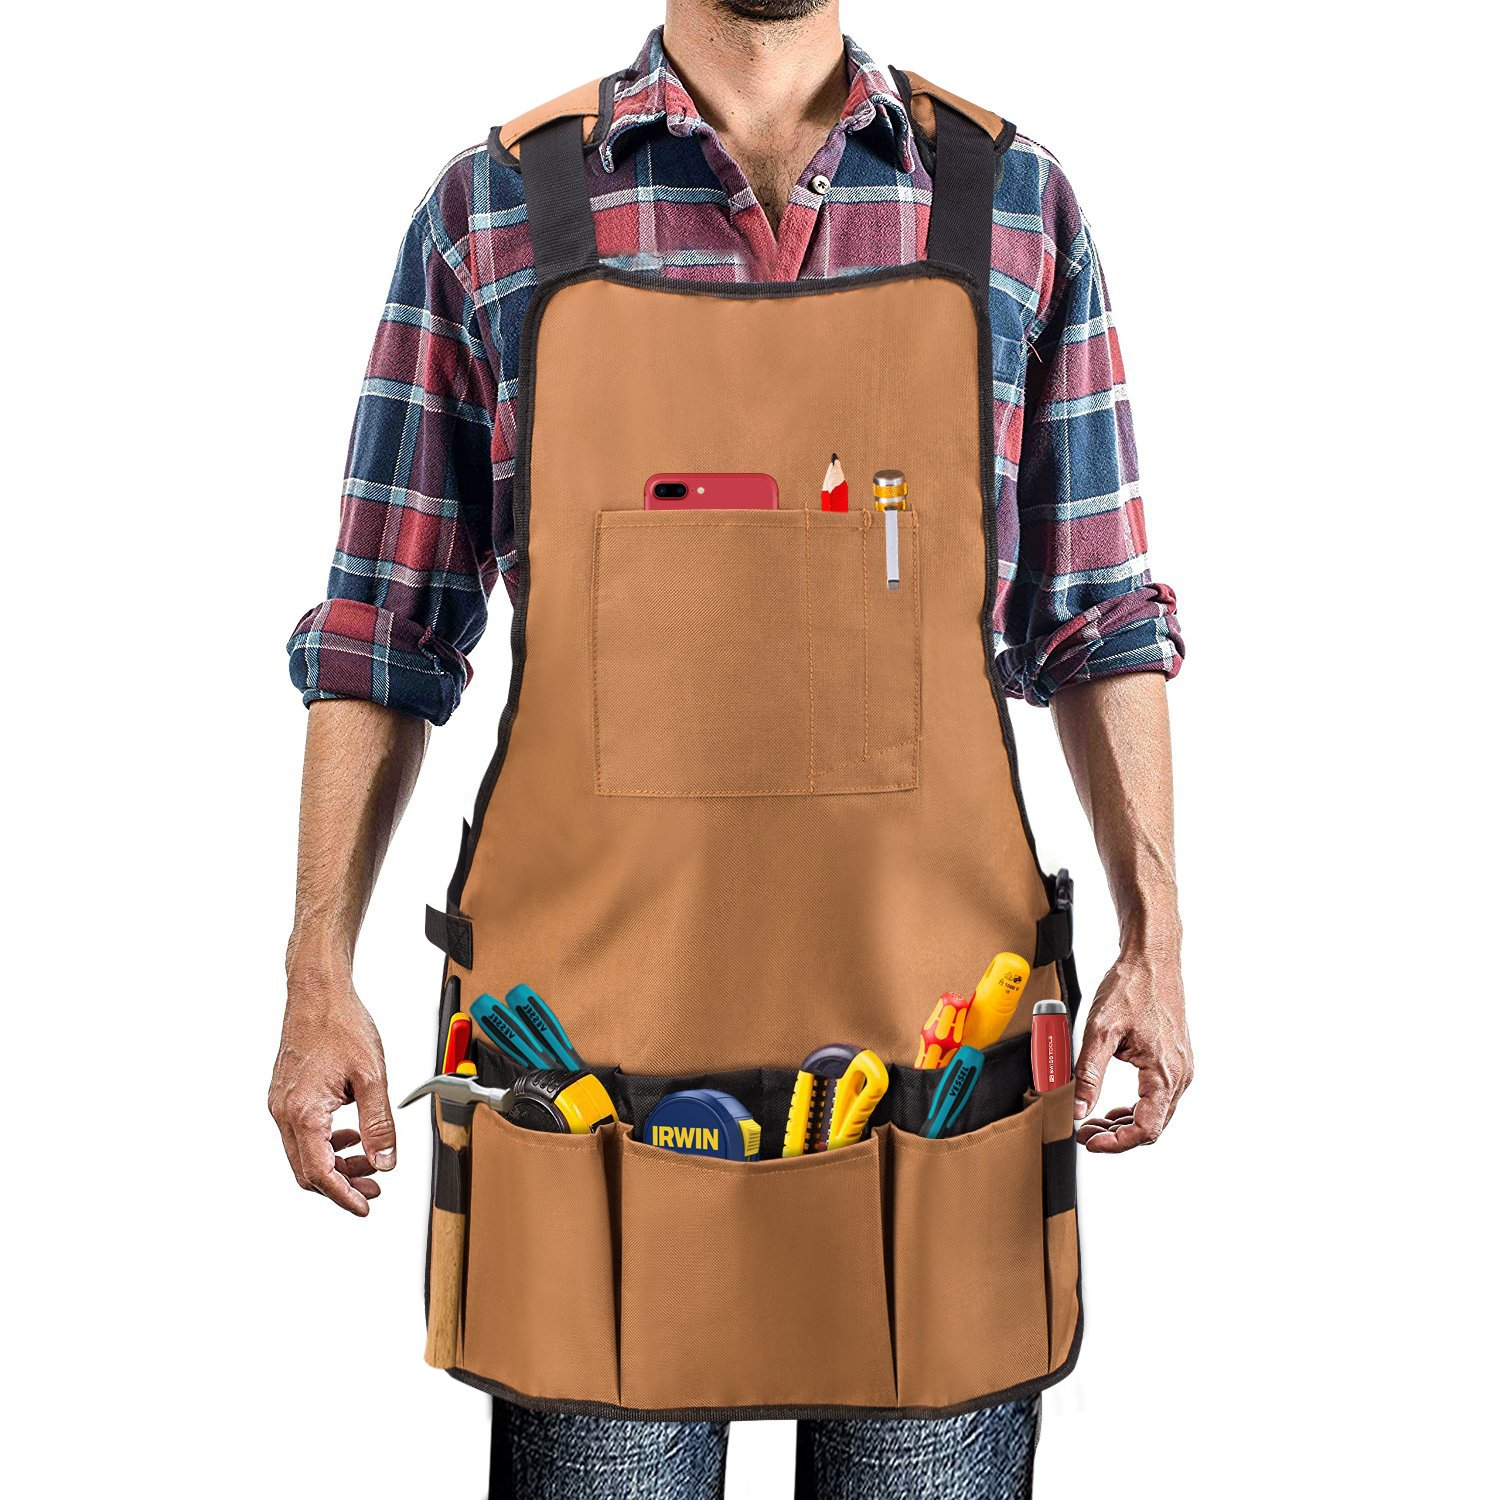 Work Apron - UHINOOS 16 Pockets Professional Heavy Duty Waterproof Tool Apron With Adjustable Cross-back Strap Fits Men & Women (brown)